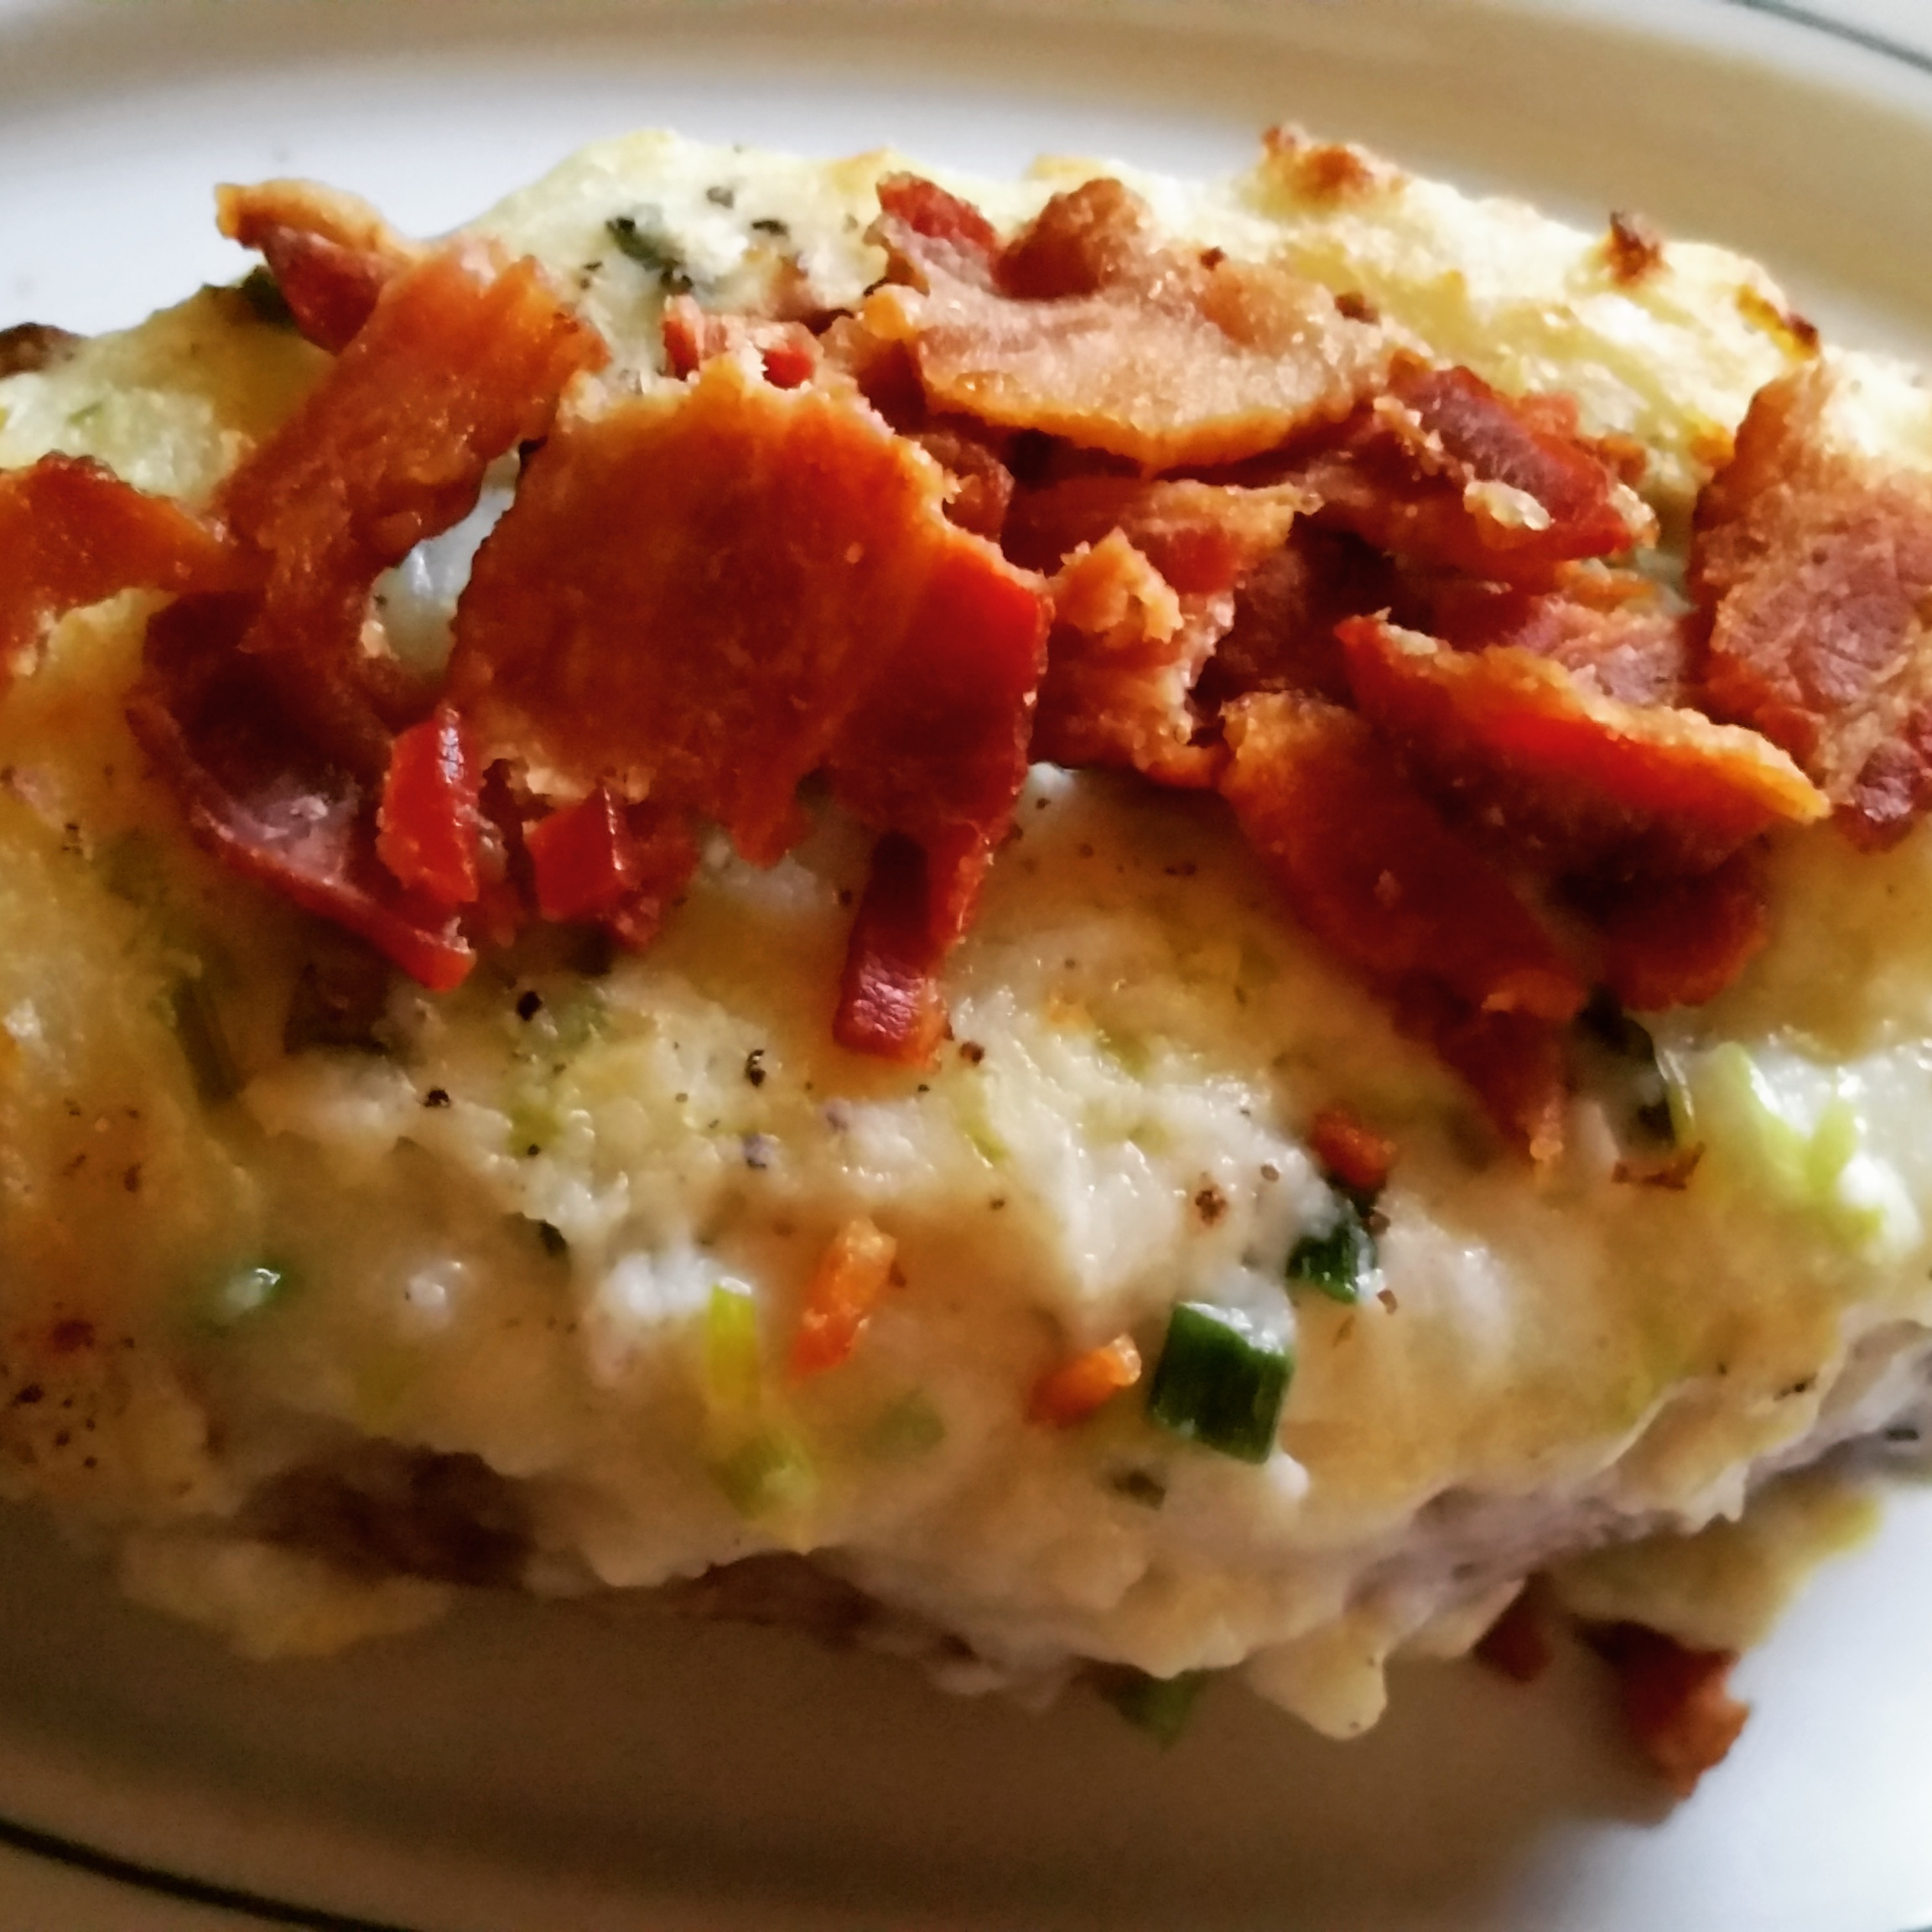 Twice-Baked Potatoes with Creamy Green Onion Sauce Vickie M.